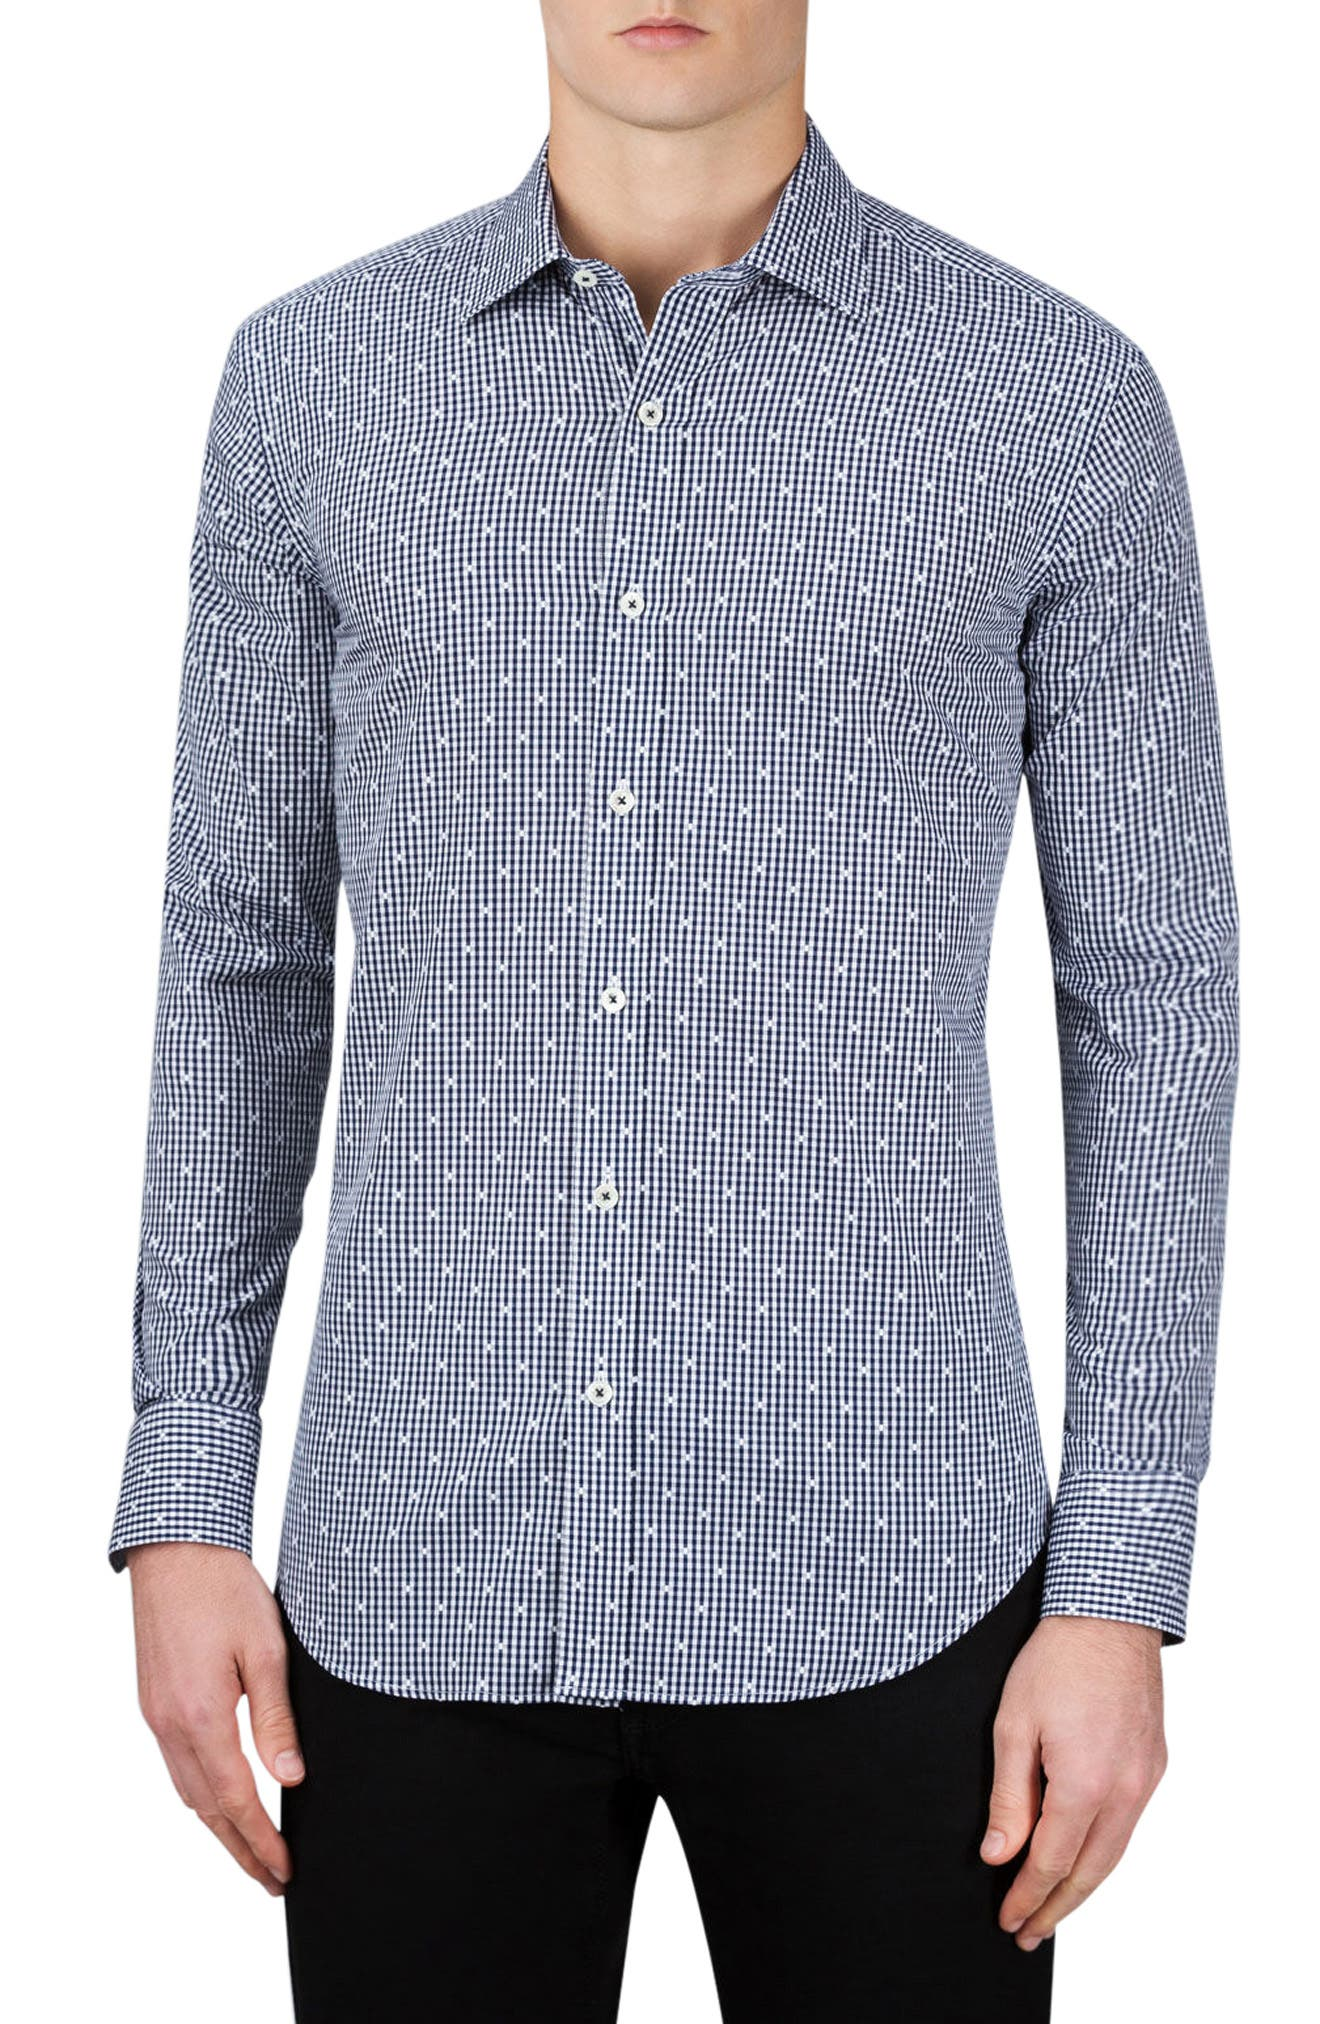 Main Image - Bugatchi Shaped Fit Check Sport Shirt